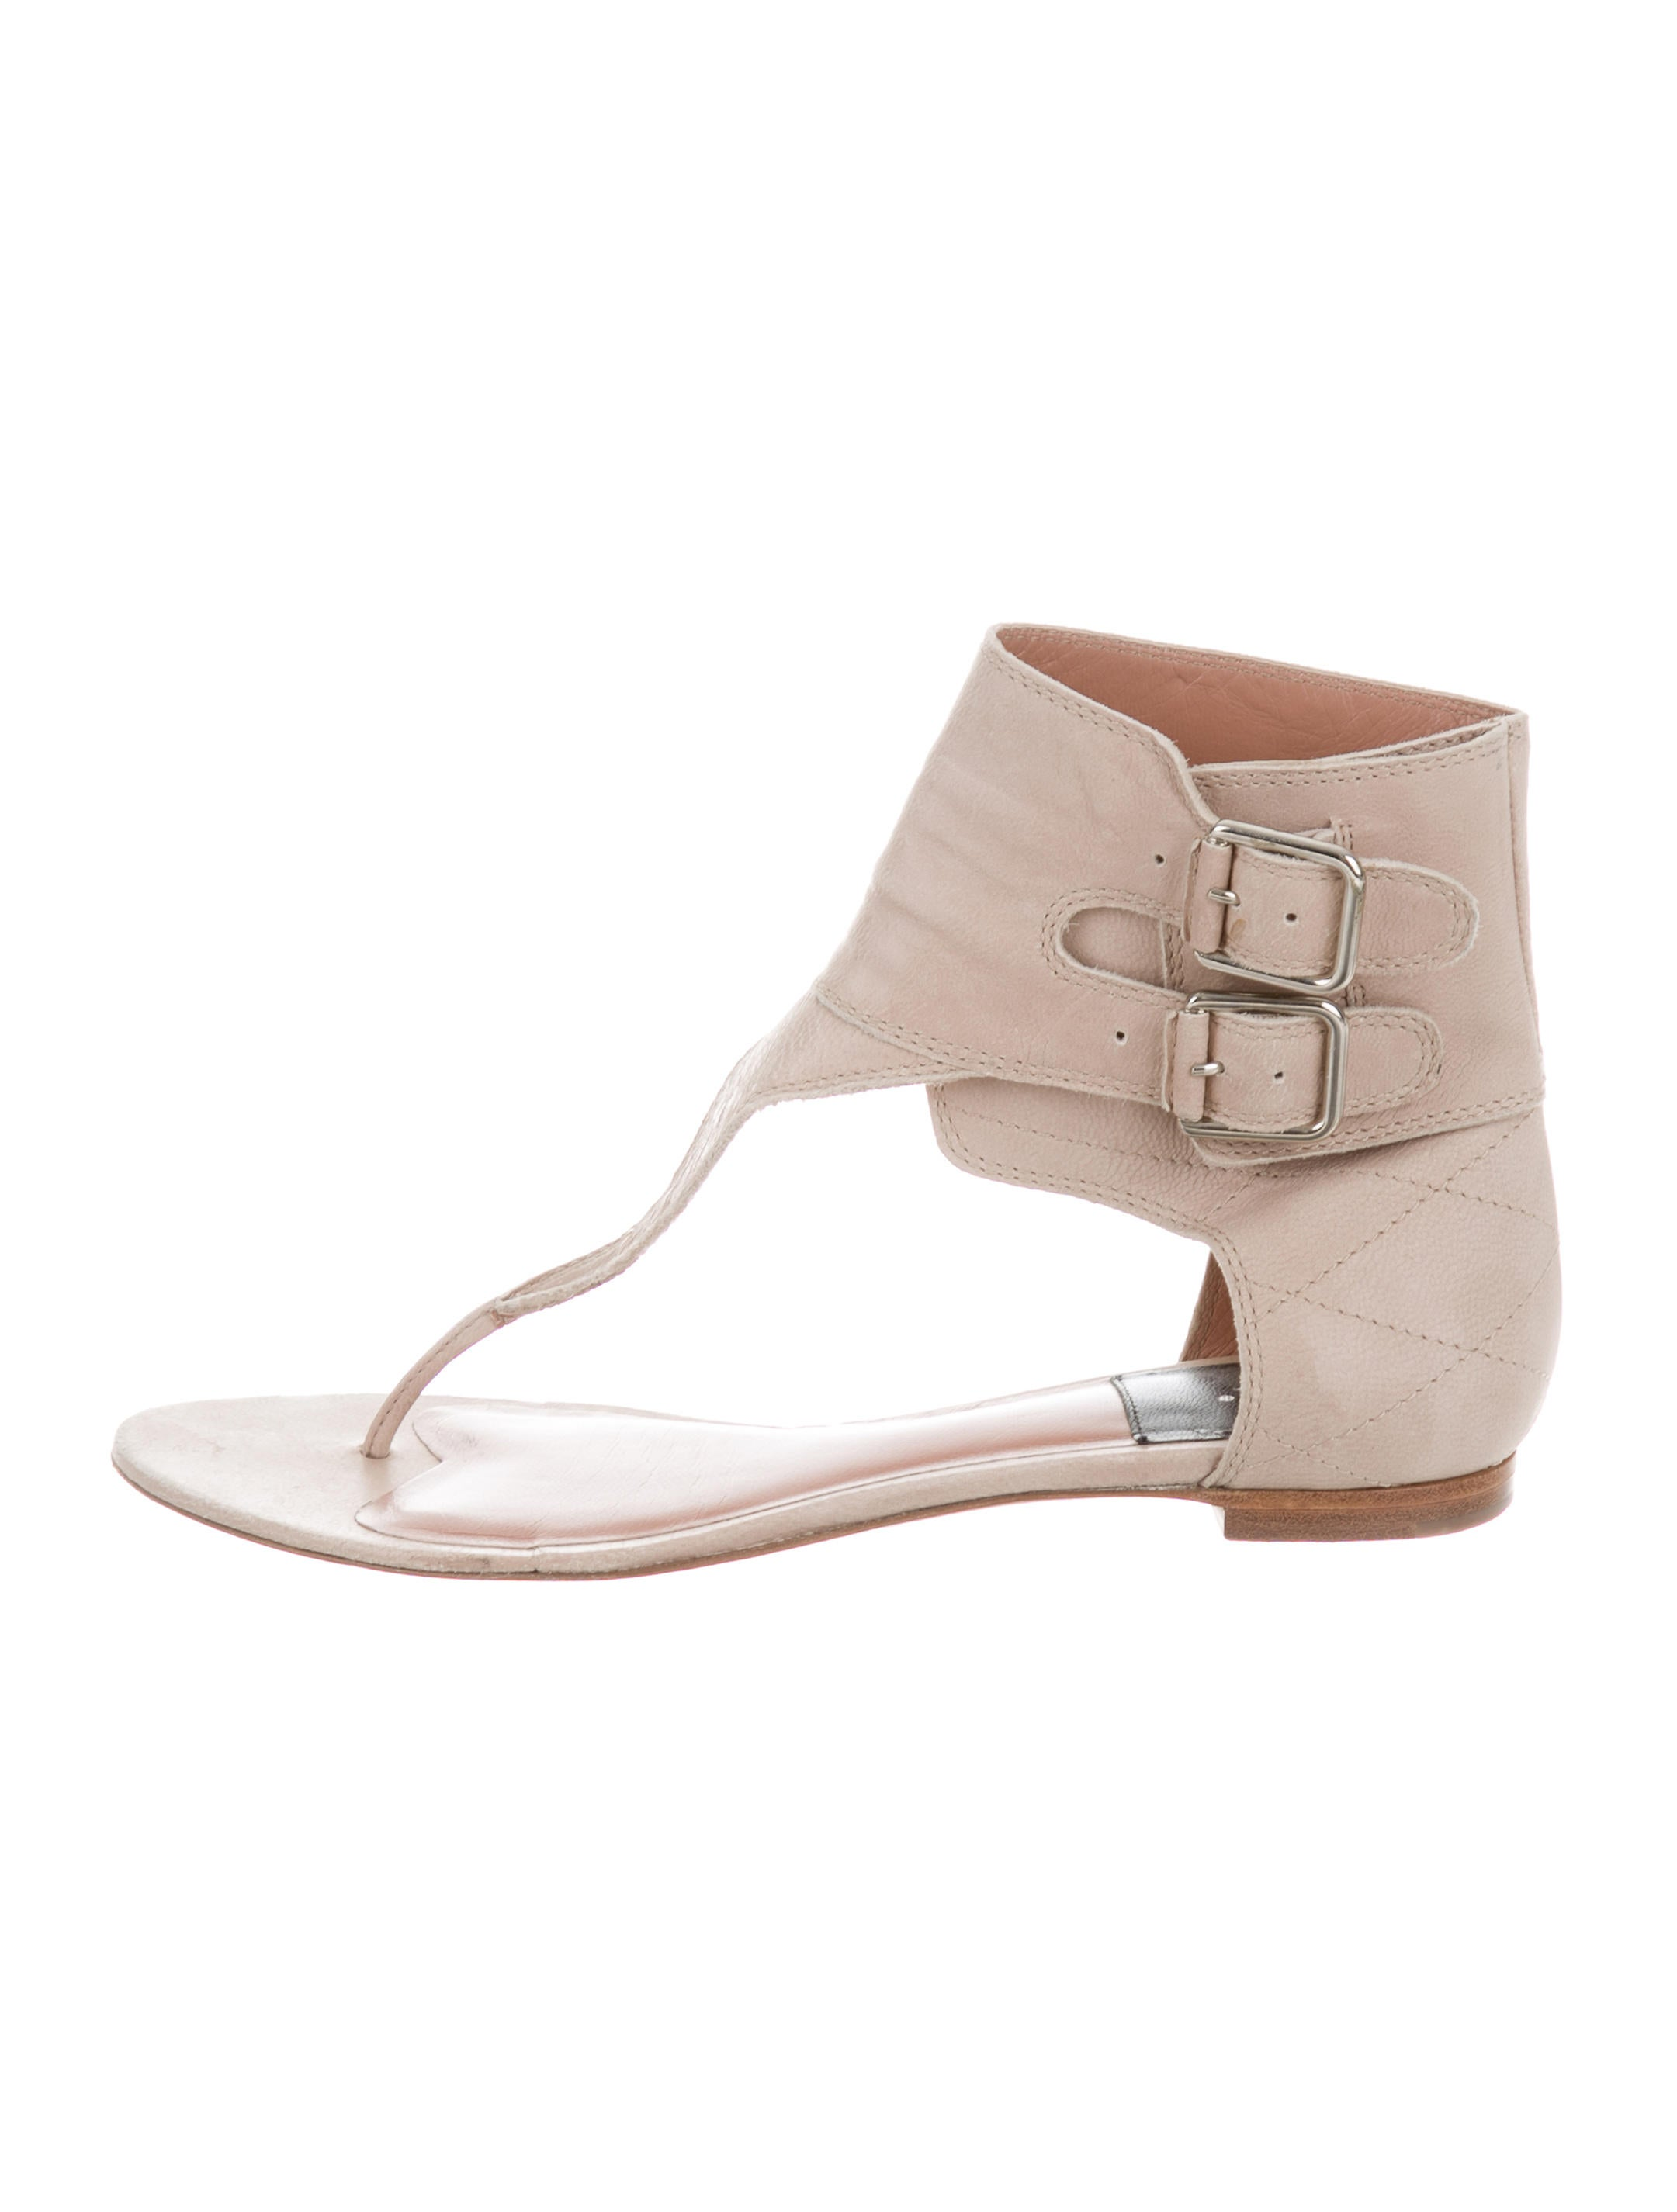 Laurence Dacade Leather Ankle-Strap Sandals buy cheap enjoy MYpTzt